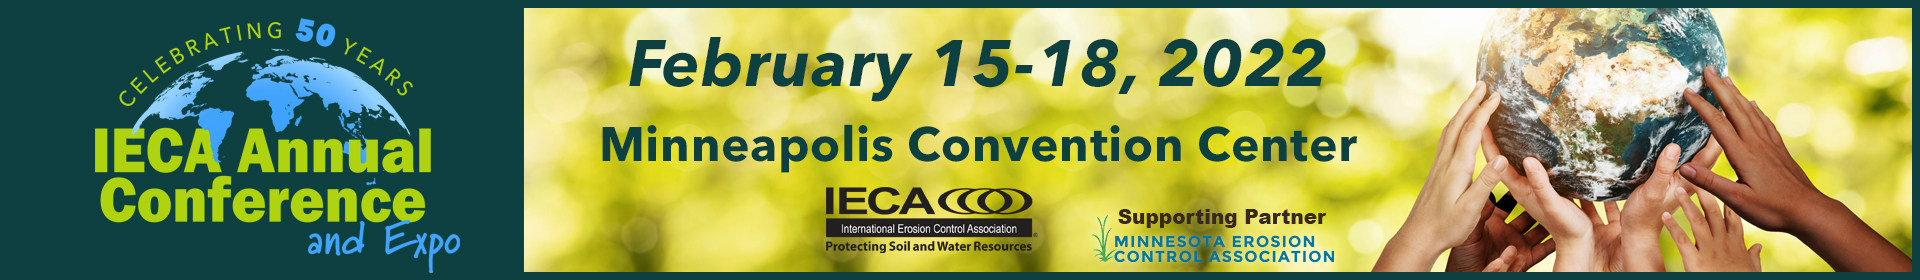 2022 IECA Annual Conference & Expo Event Banner